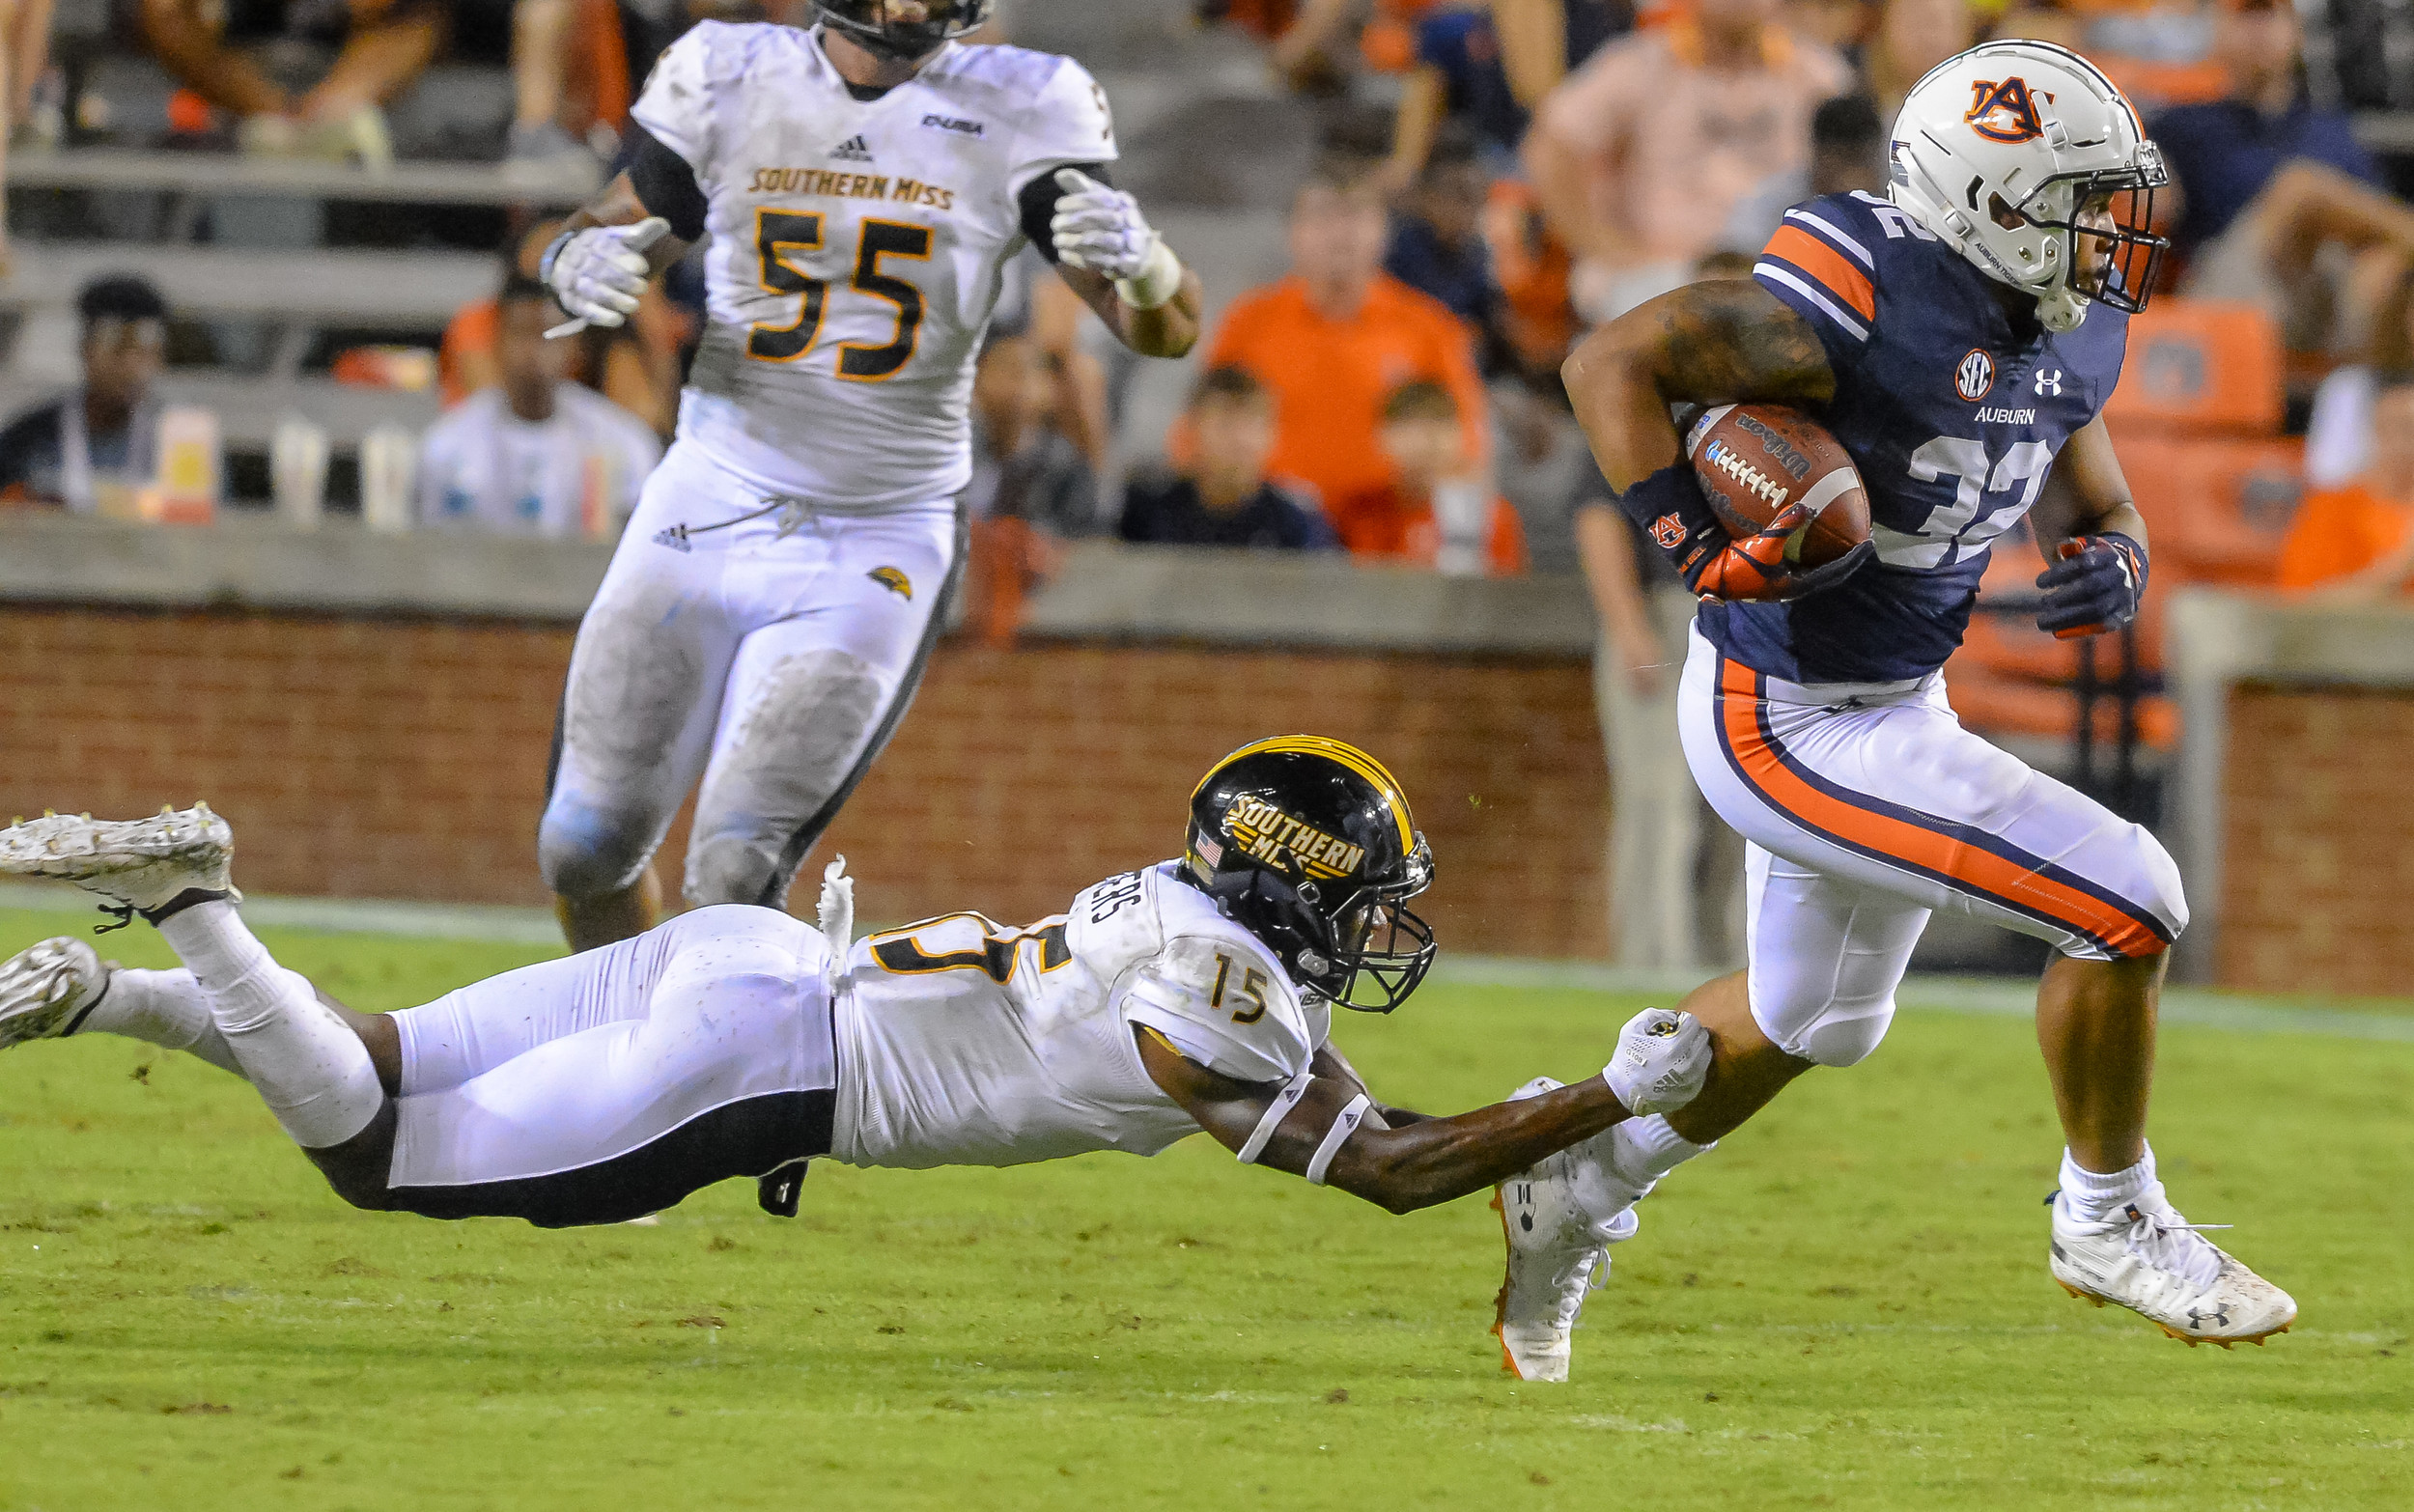 Southern Miss Golden Eagles defensive back Shannon Showers (15) dives at Auburn Tigers running back Malik Miller (32)  the second half of Saturday's game, at Jordan Hare Stadium in Auburn AL. Daily Mountain Eagle -  Jeff Johnsey